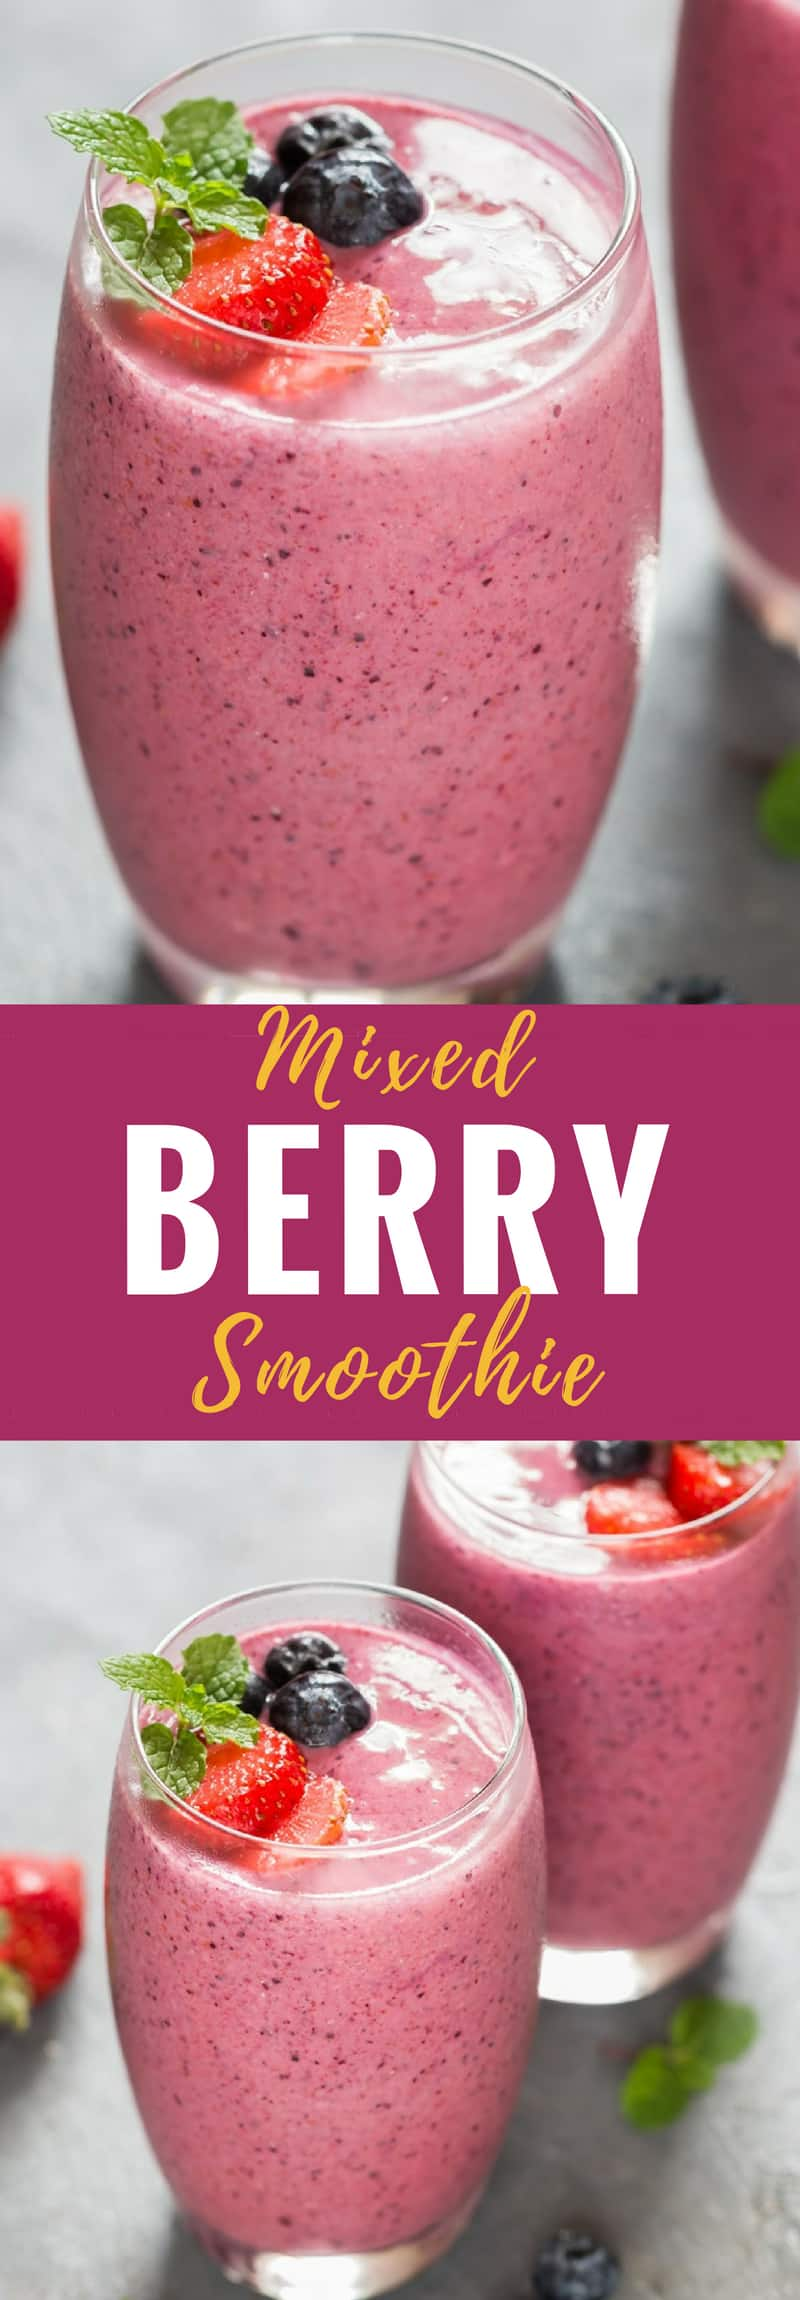 Frozen mixed berries smoothie recipe is perfect snack or meal option. Hot summer days cries out for cold smoothies to keep refreshed. What could be better than mixed berry smoothie with yogurt for a perfect start to a day? And if you are looking for genuine snack after a good workout, this is it.